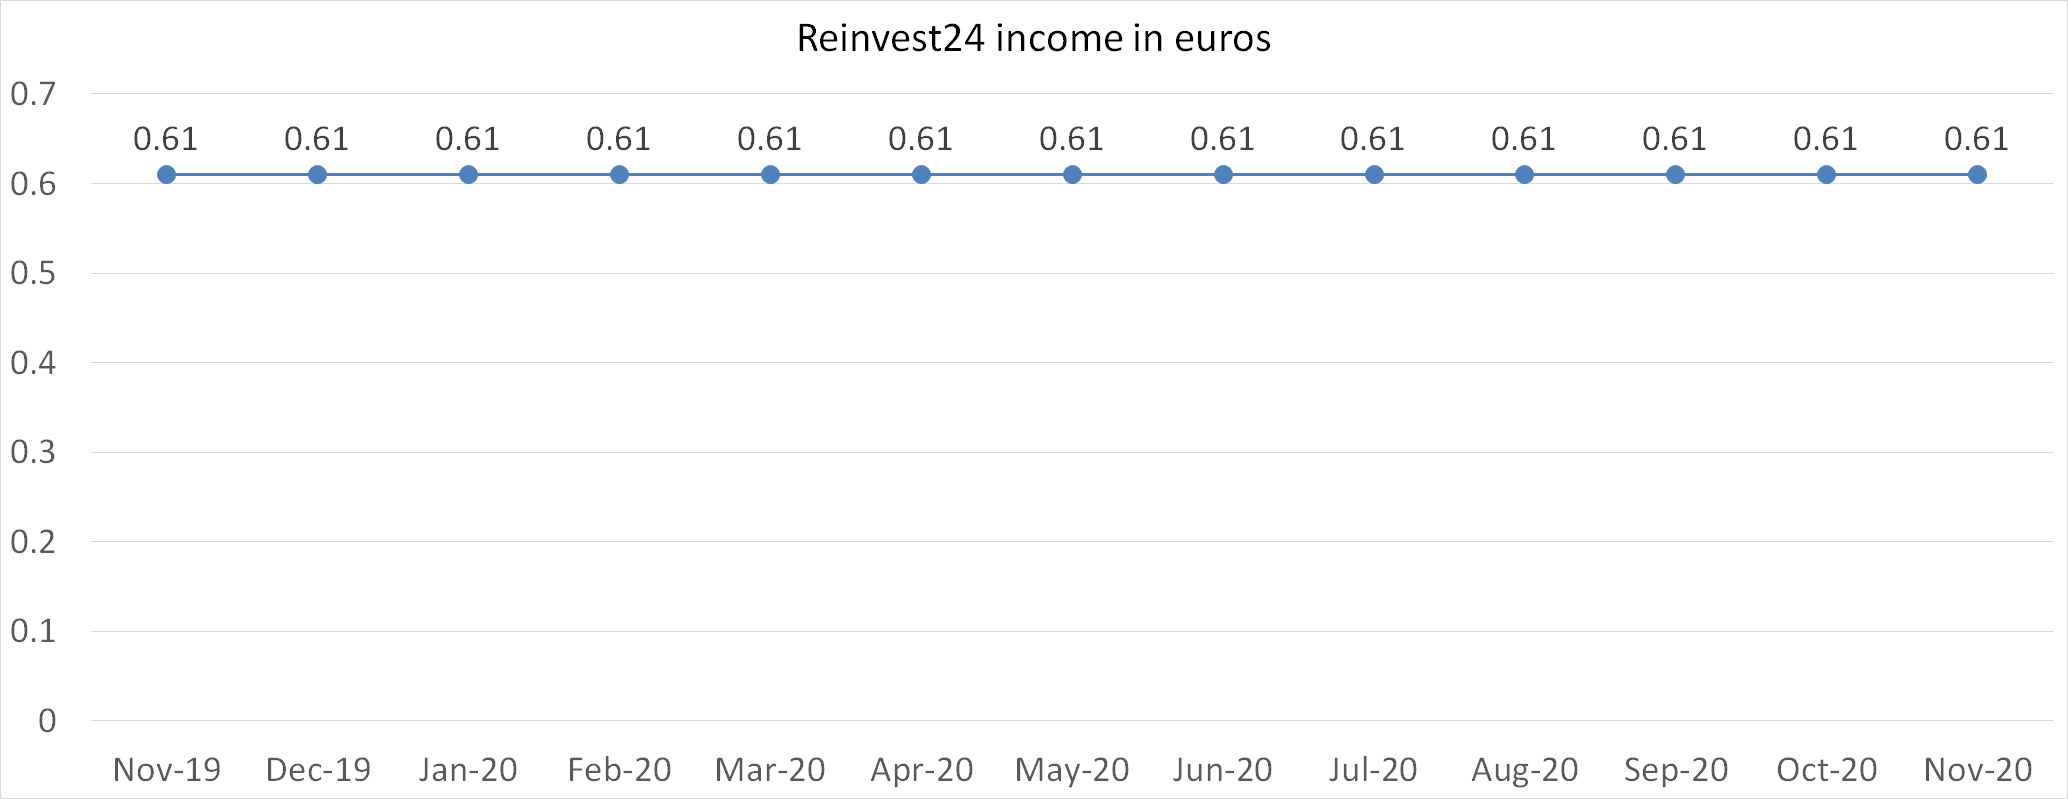 Reinvest24 income in euros november 2020